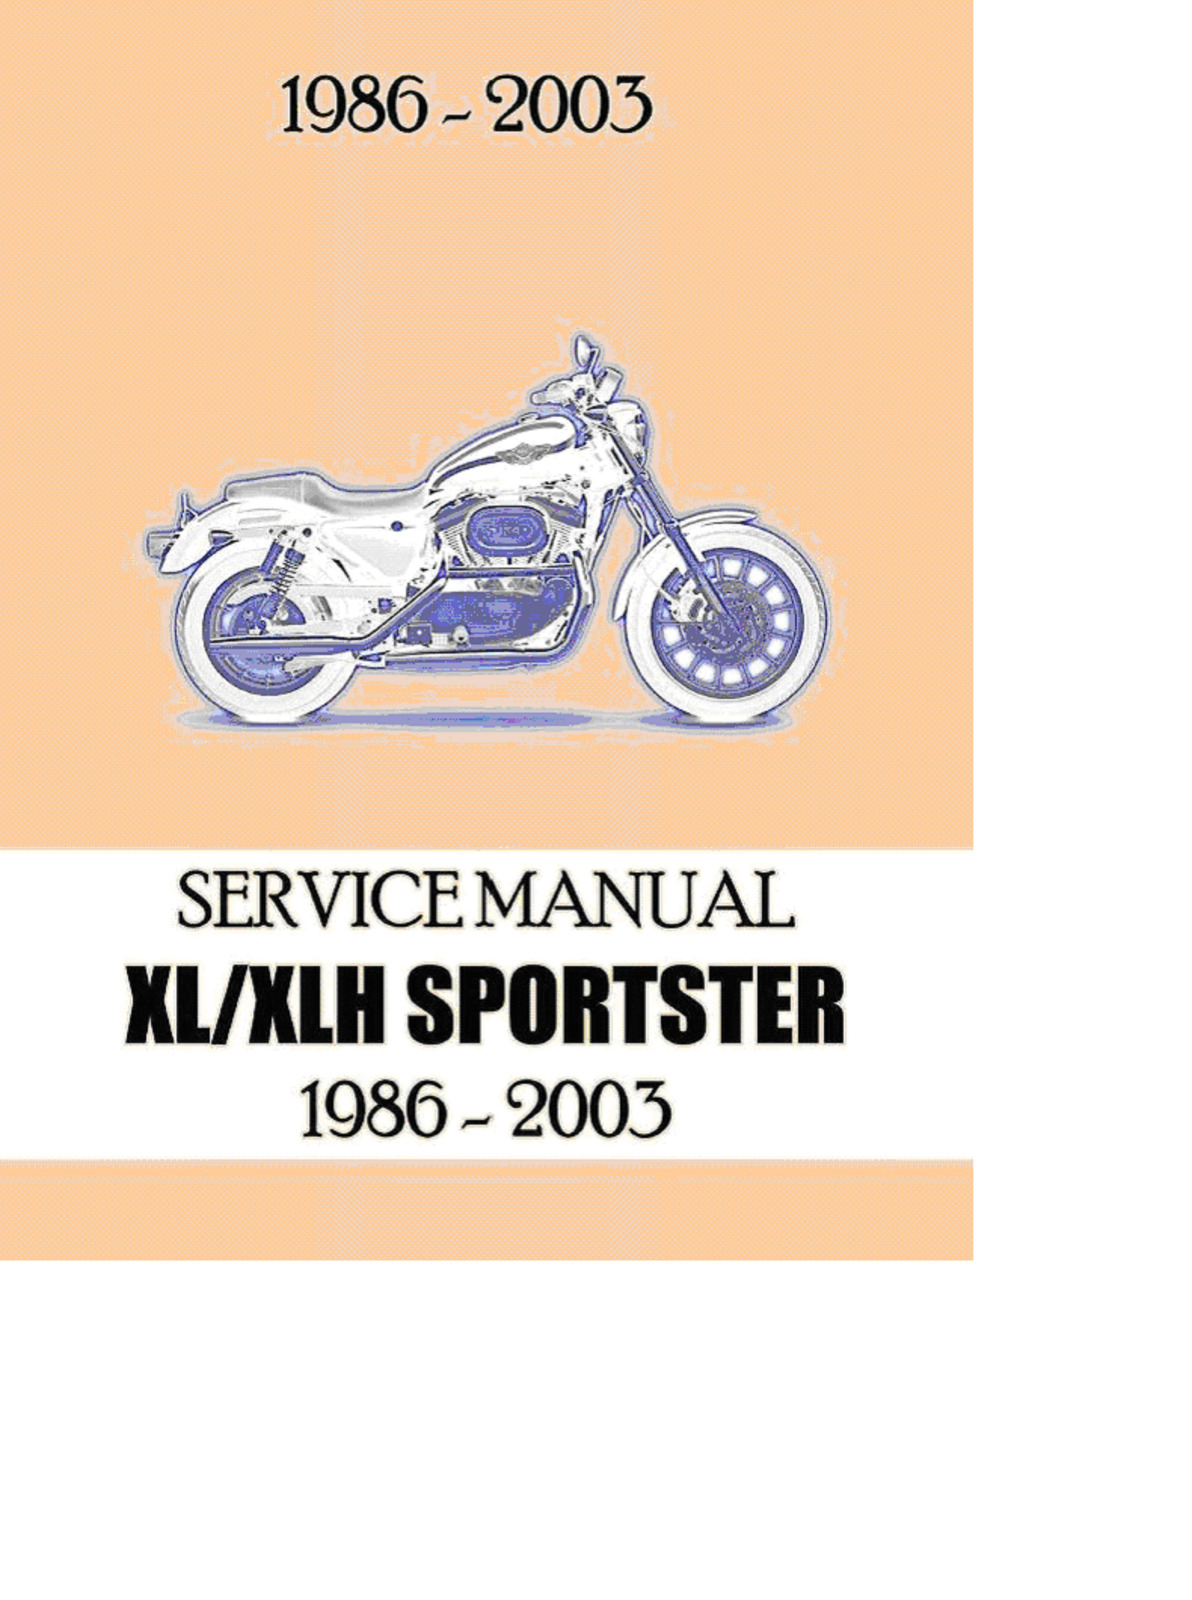 Harley Davidson SPORTSTER XL/XLH Service Repair Maintenance Manual 1986-2003  1 of 1FREE Shipping ...